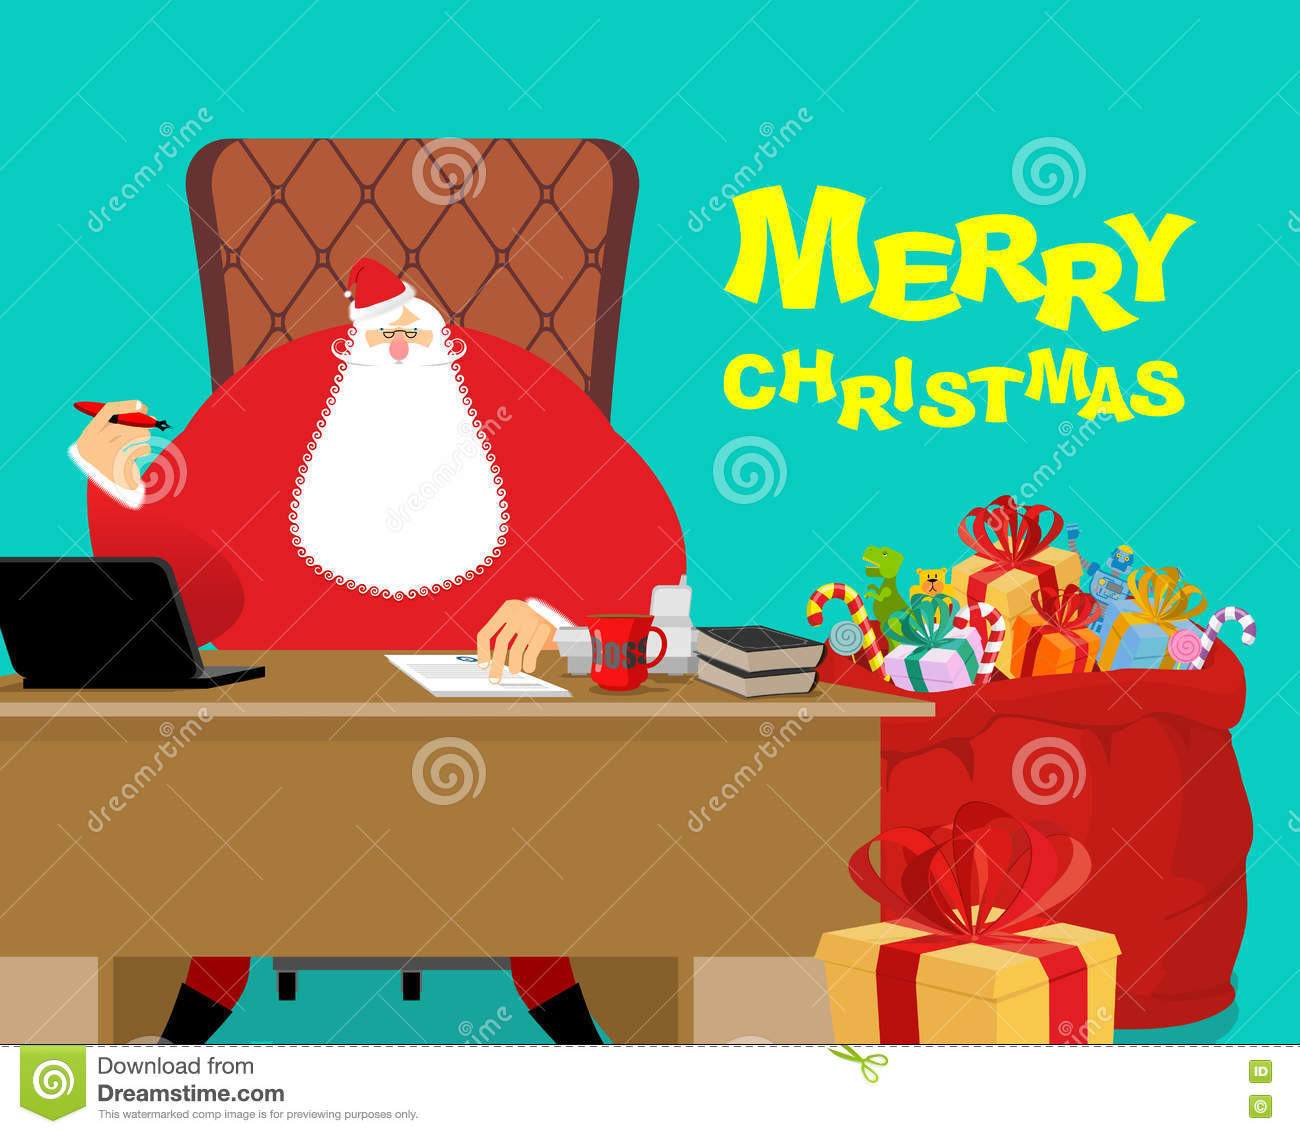 Merry Christmas. Santa Claus at work. Big red bag with gifts for